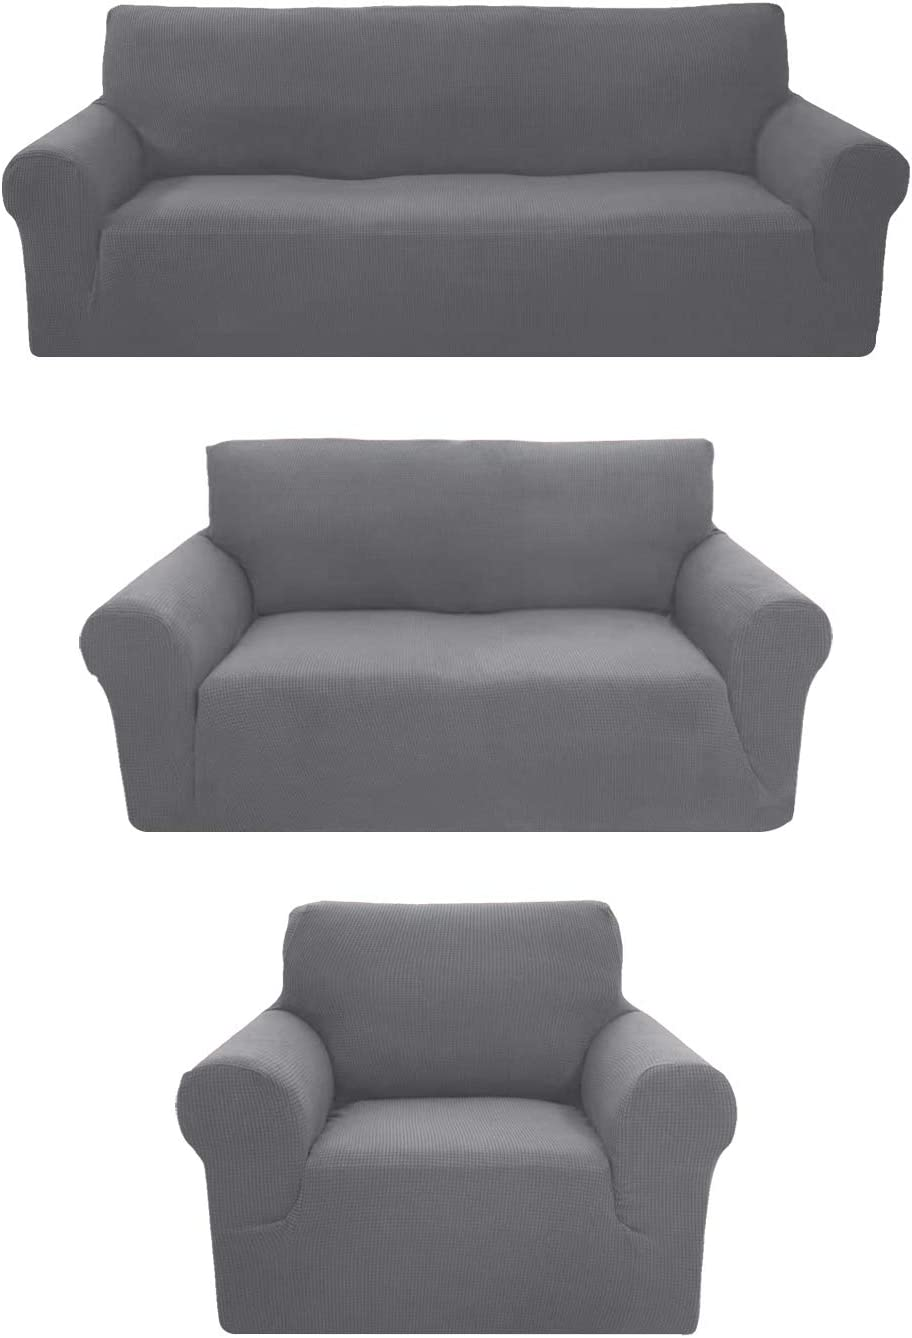 Sapphire Home 3-Piece Brushed Premium SlipCover Set for Sofa Loveseat Couch Arm Chair,Form fit Stretch,Wrinkle Free,Furniture Protector set for 3/2/1 Cushion,Polyester Spandex,3pc, Brushed, Light Gray